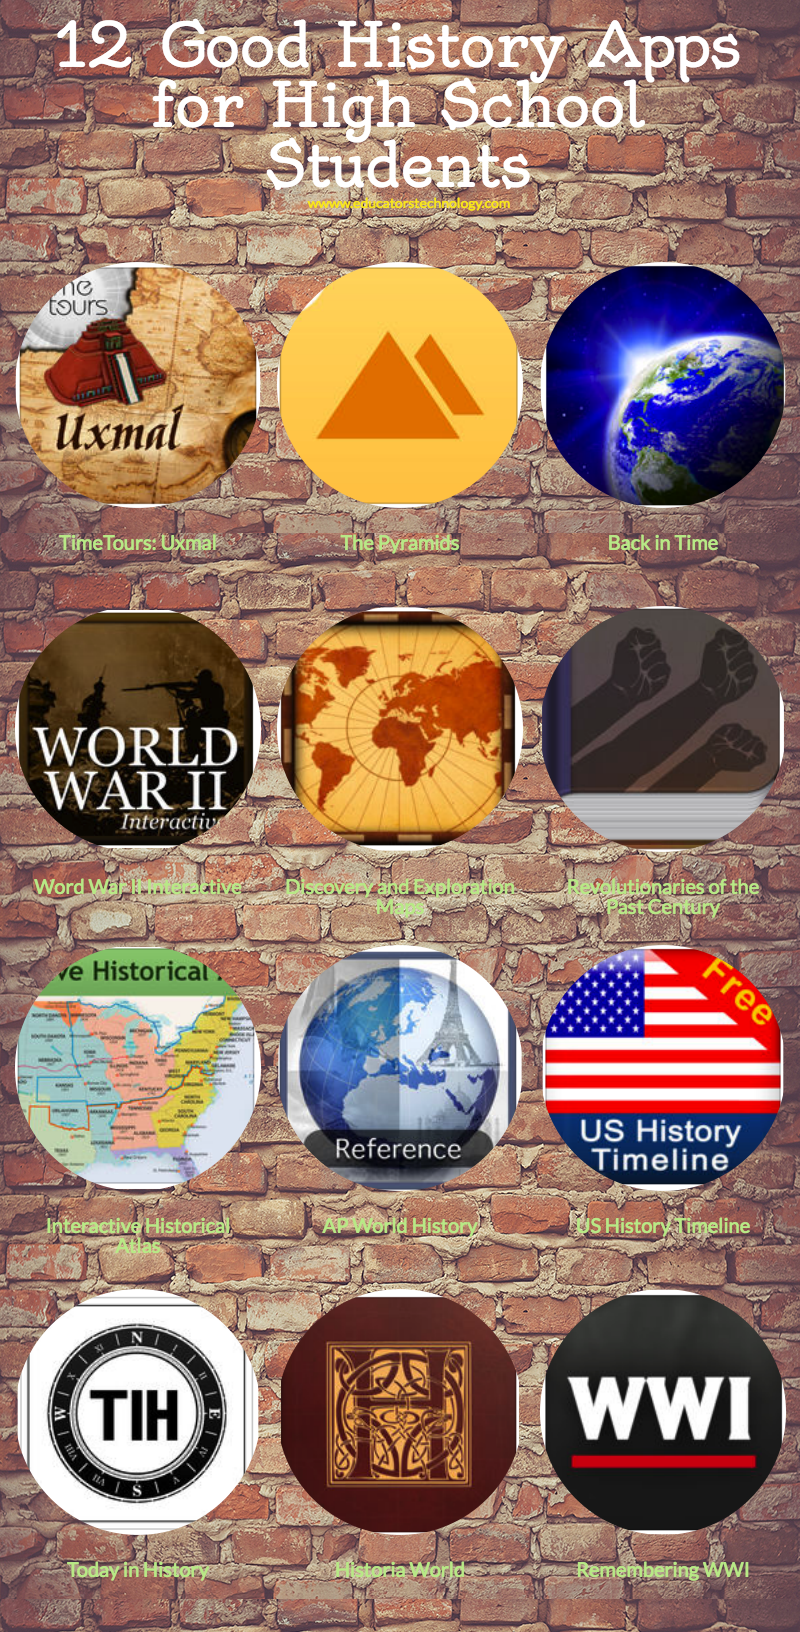 12 Good History Apps for High School Students | Educational